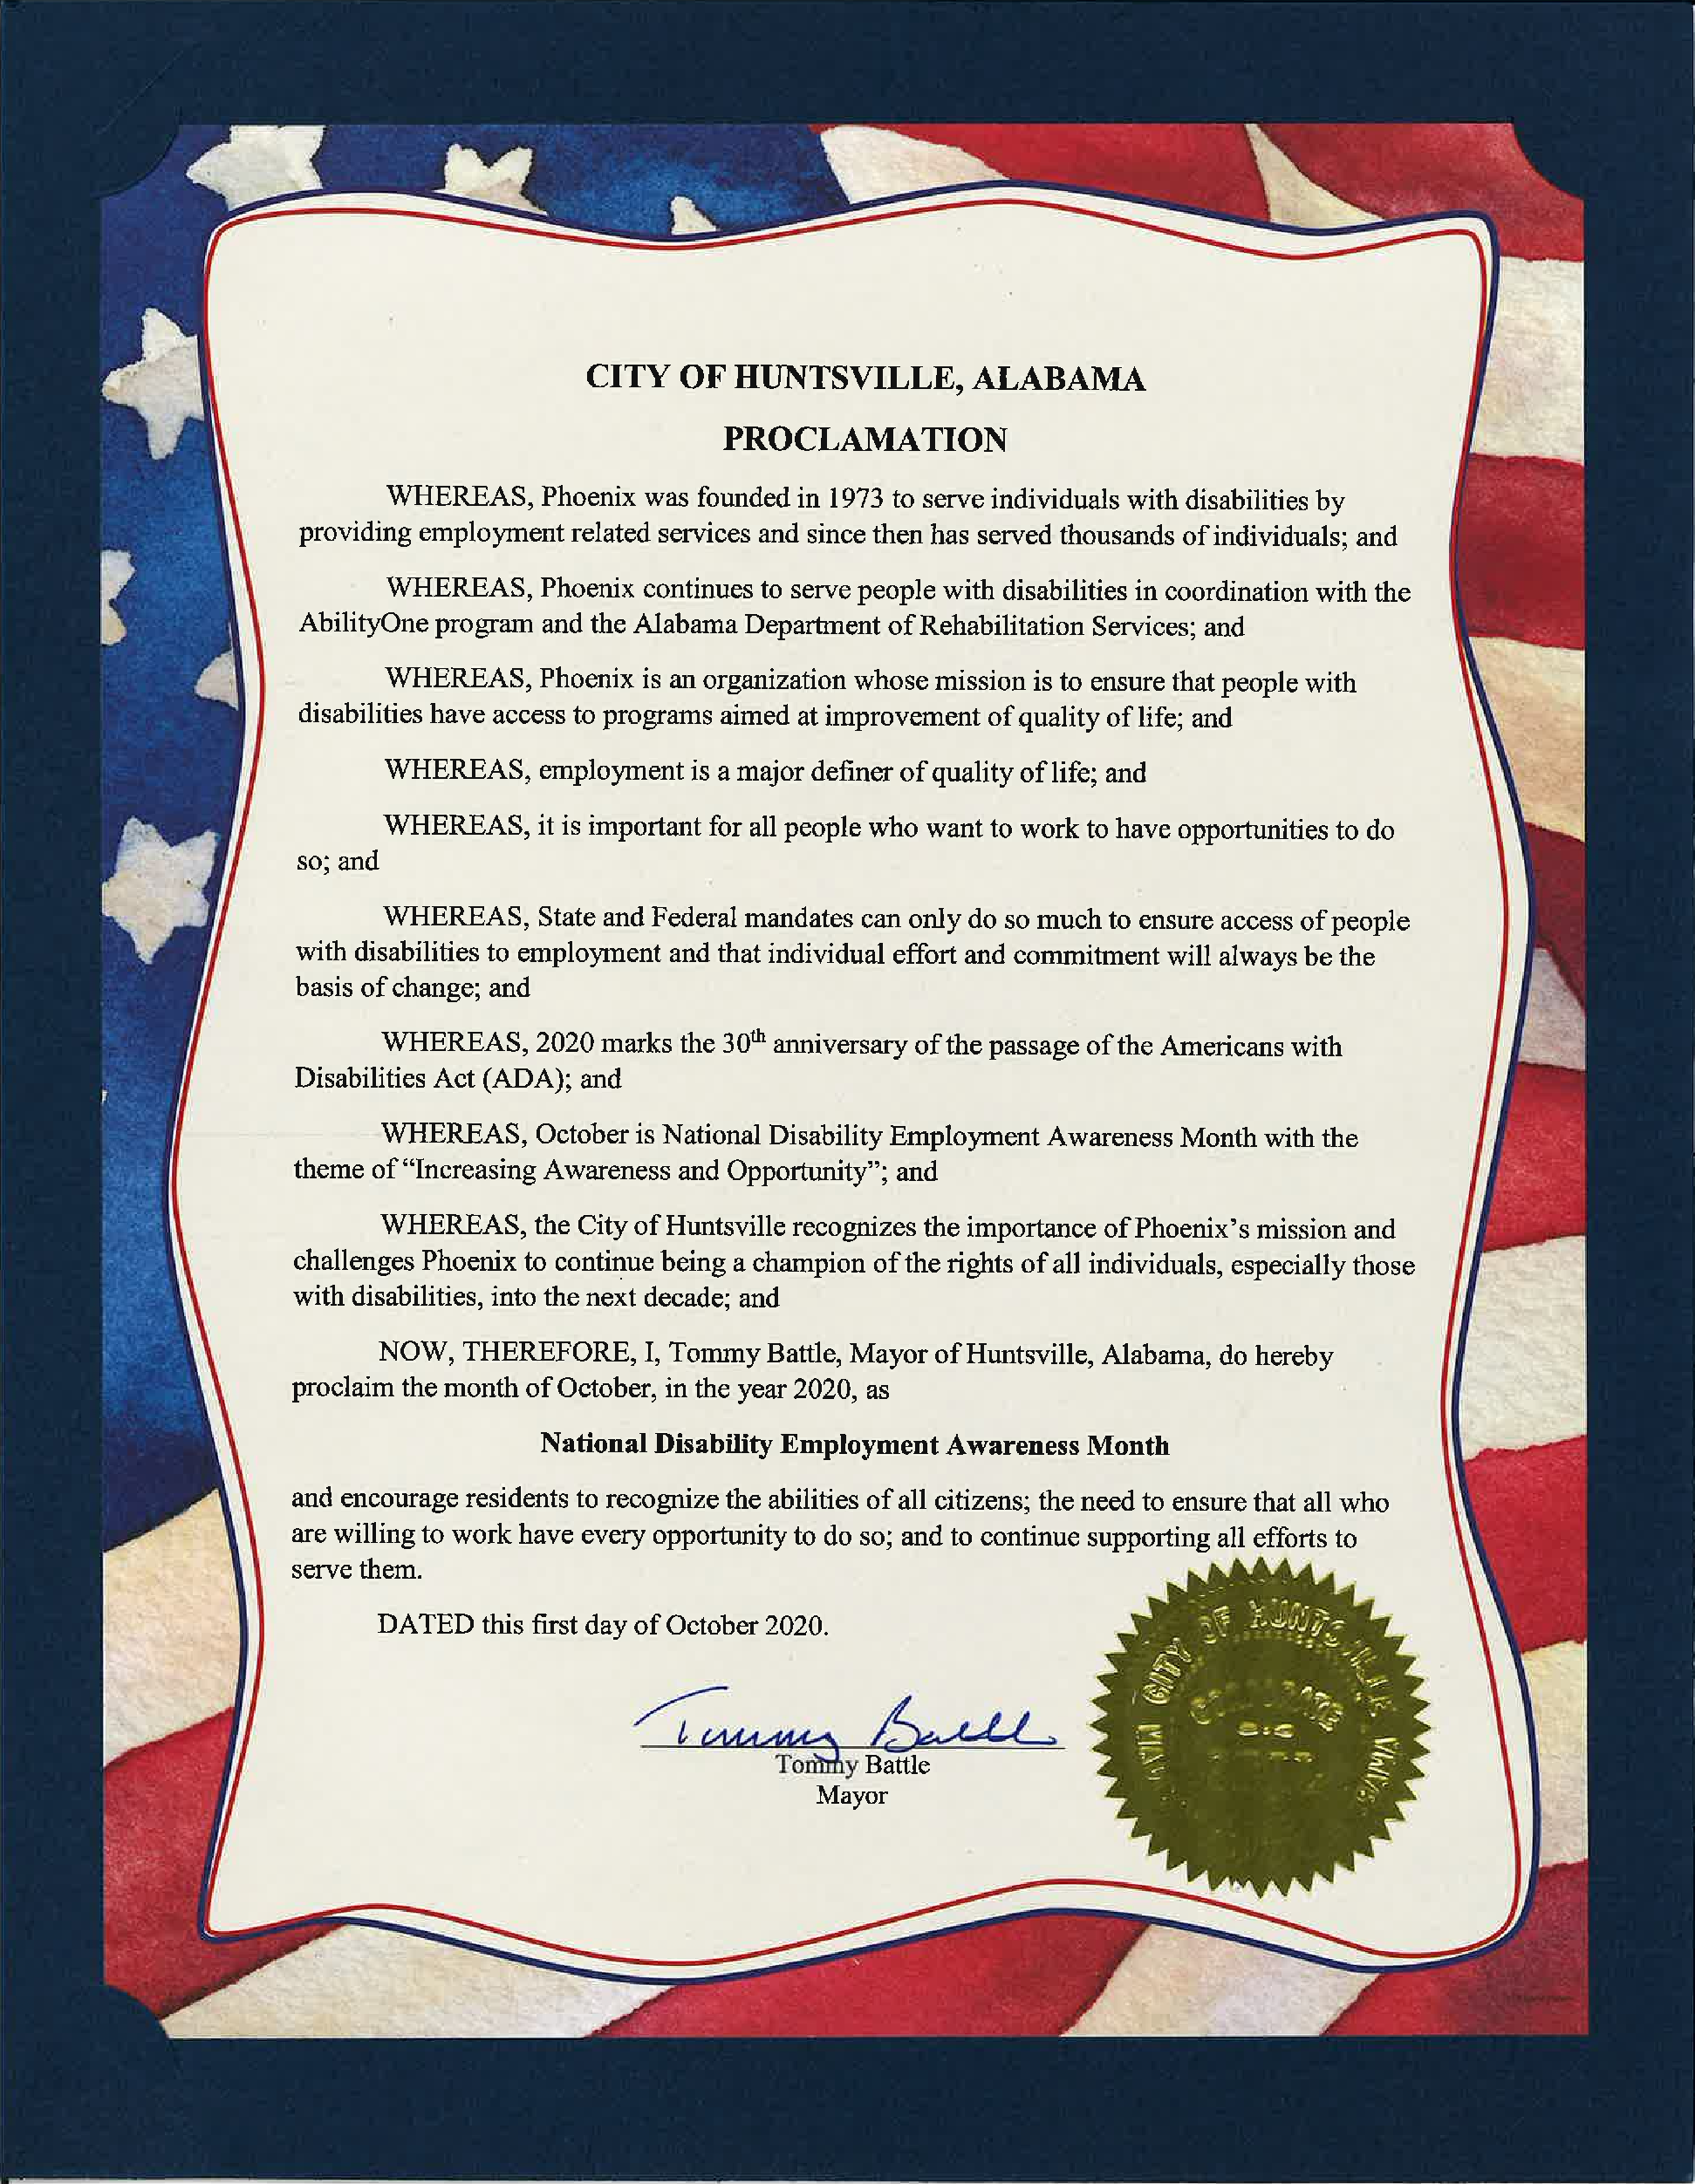 Picture of National Disability Employment Awareness Month Proclamation signed by Huntsville Mayor Tommy Battle